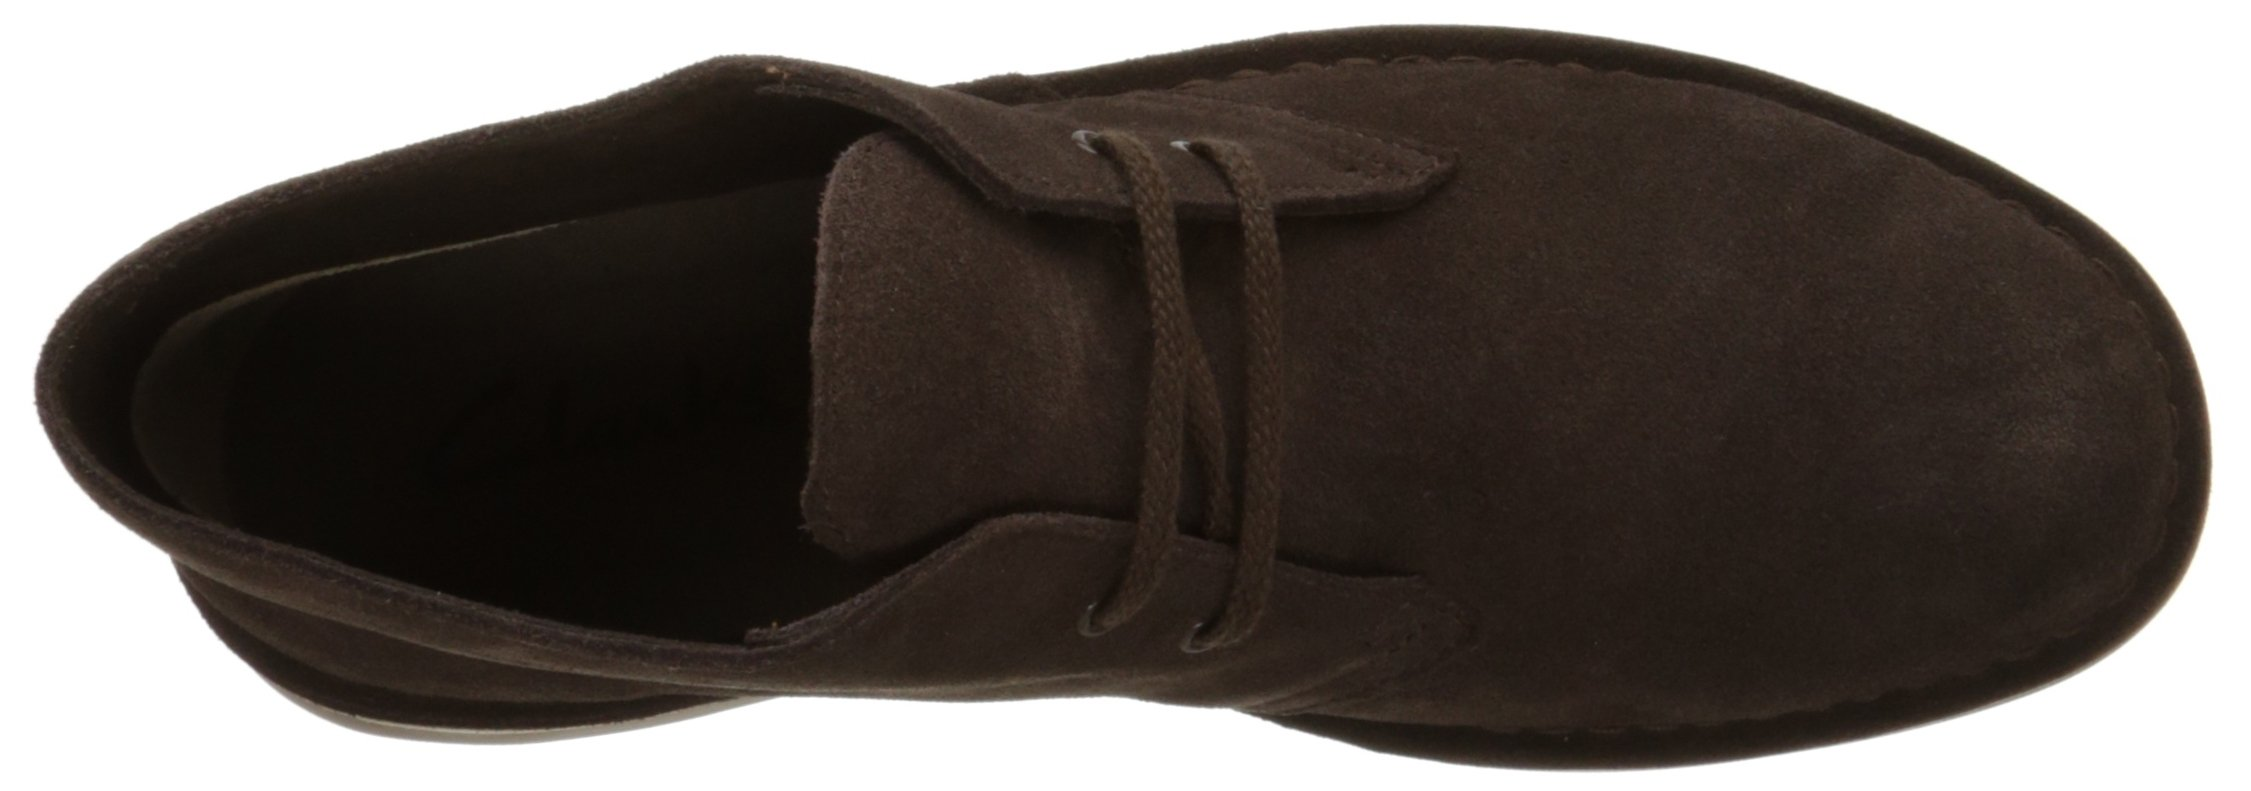 Clarks Men's Bushacre 2 Chukka Boot,Brown Suede,13 M US by CLARKS (Image #8)